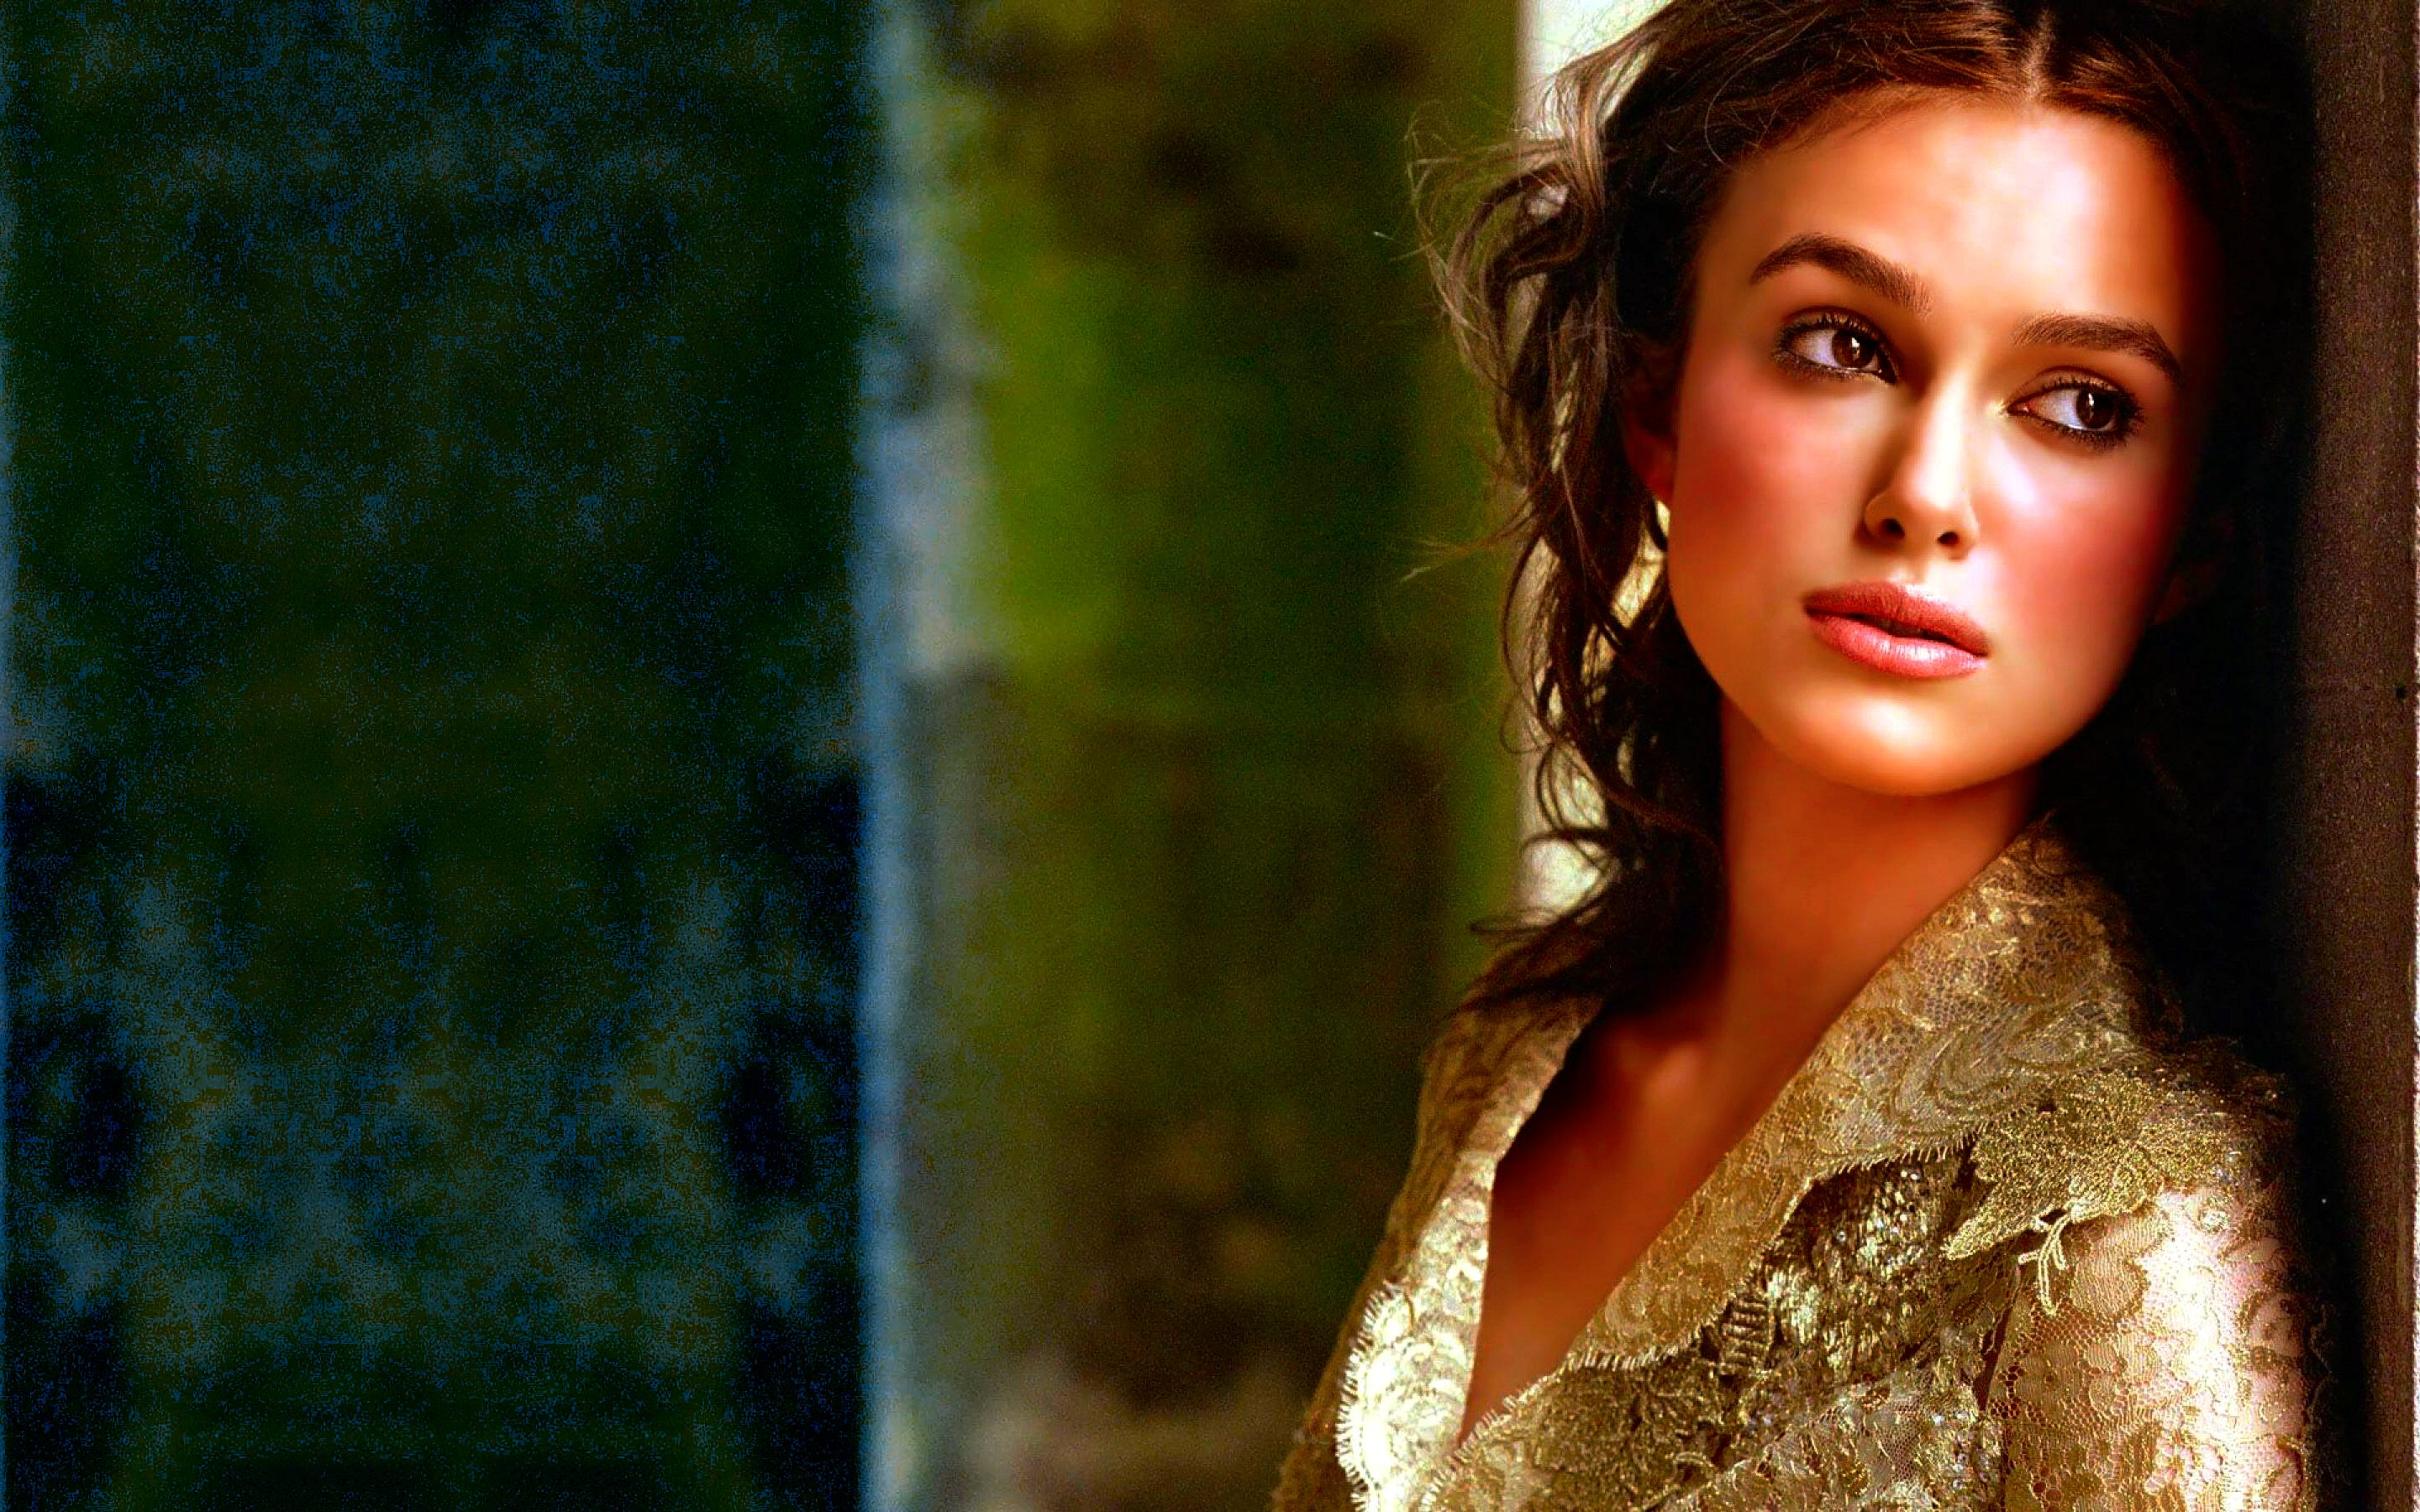 2880x1800 - Keira Knightley Wallpapers 28